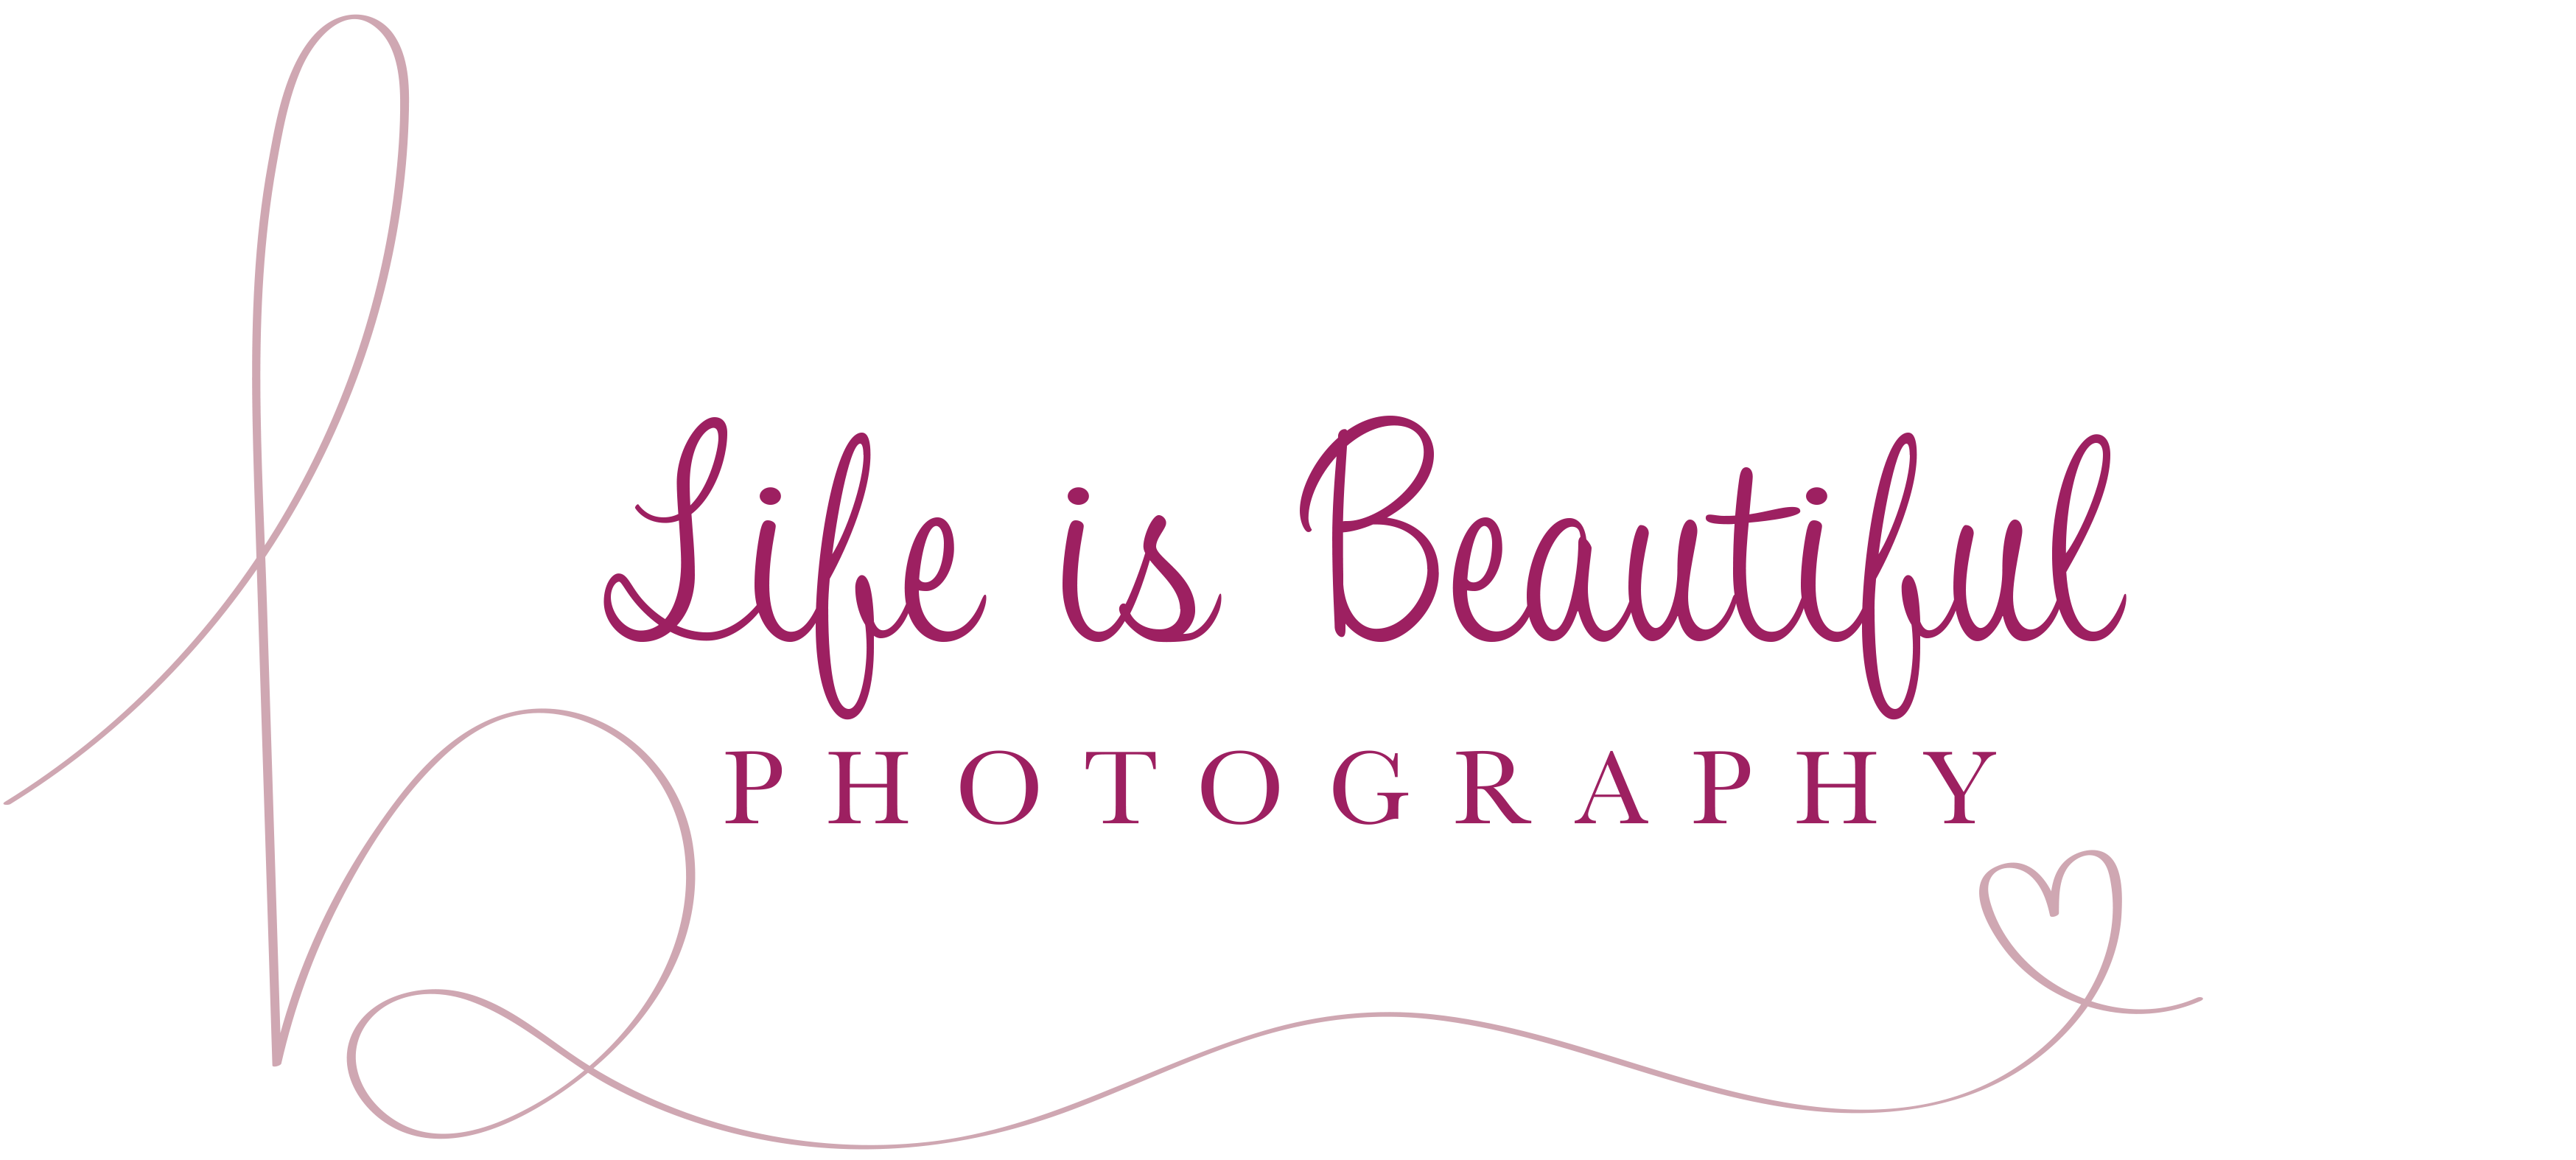 Life Is Beautiful Photography's logo